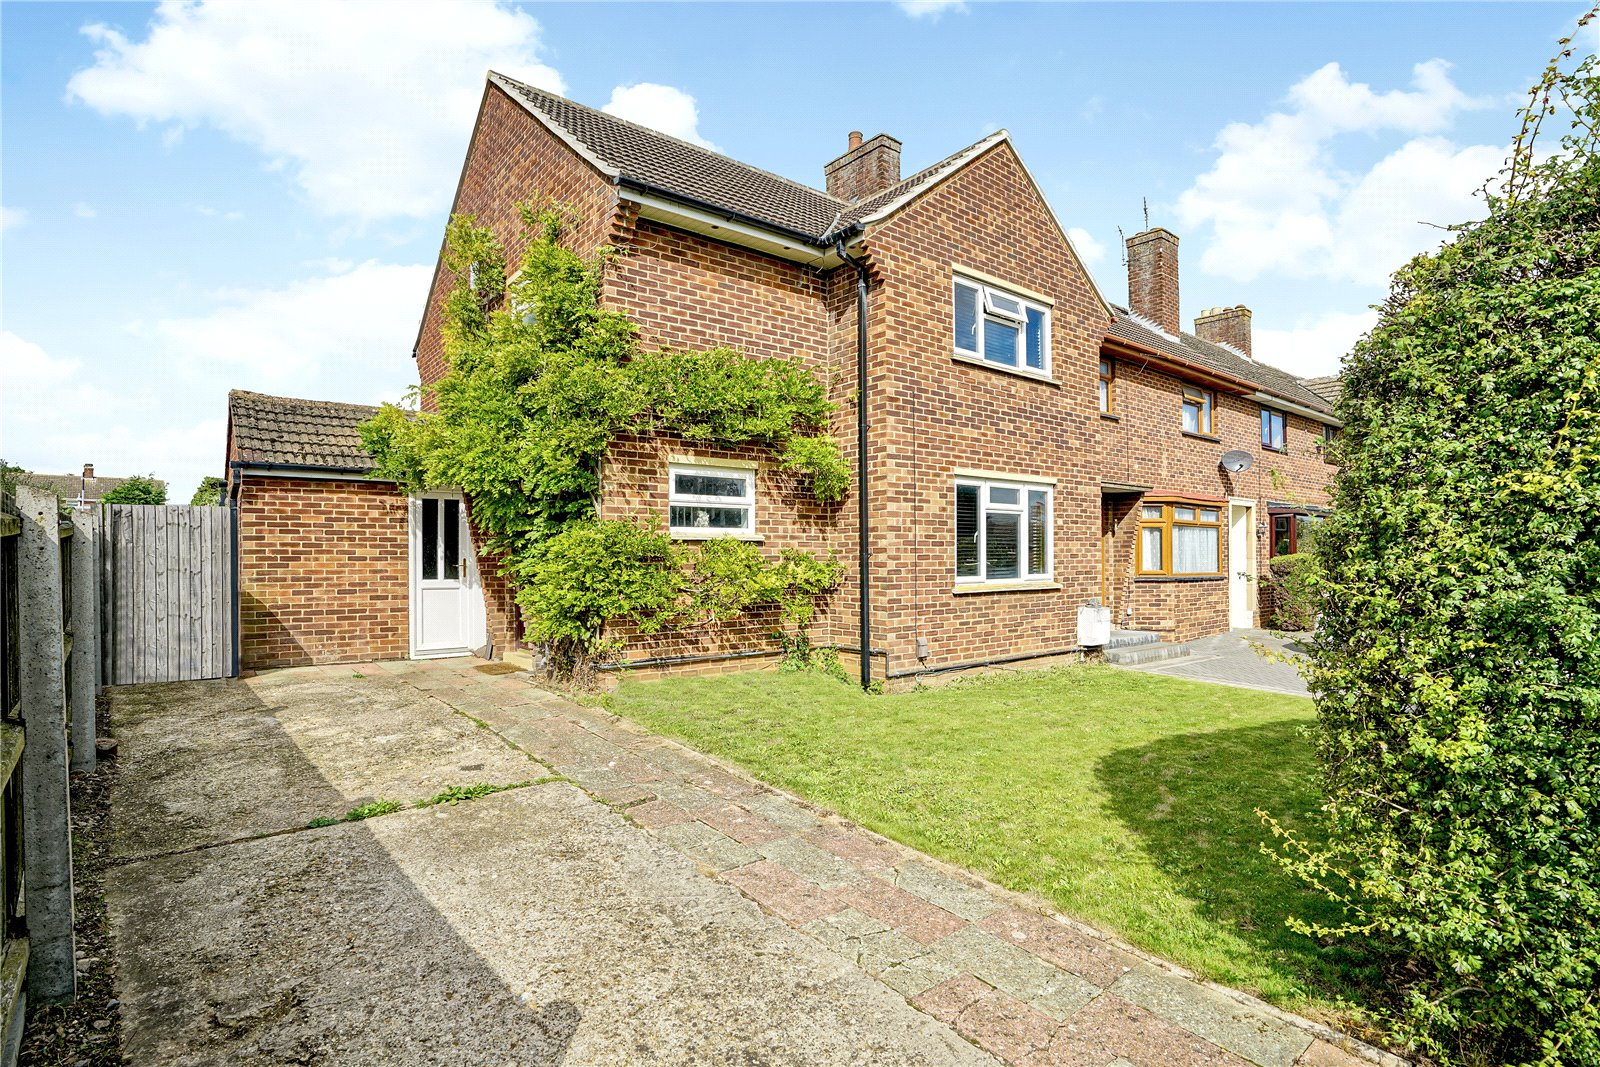 3 bed house for sale in Eaton Socon, PE19 8BY  - Property Image 1